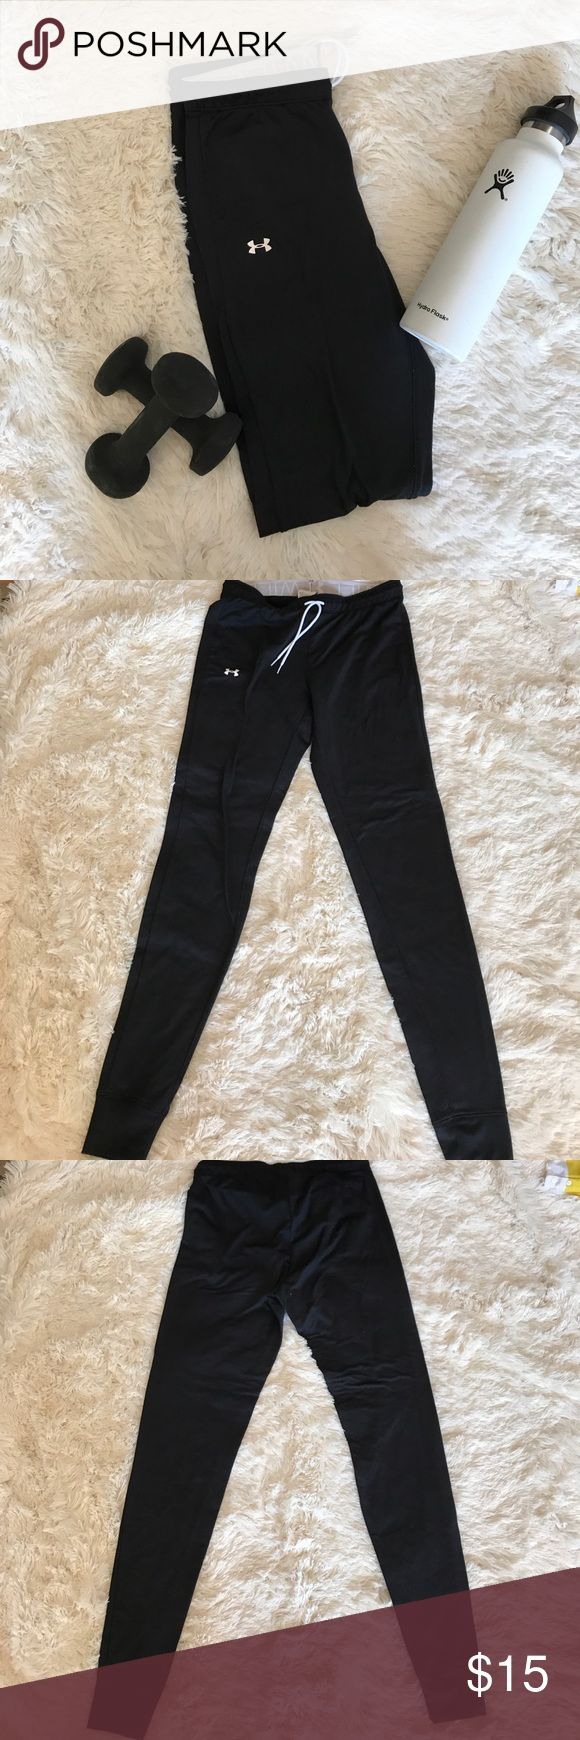 Under Armor Pants Black small under armor pants. They are somewhat like joggers tight from the bottom. Purchased in Japan. Very minor pilling as pictured.Compliments the glutes very well. 🛑Sorry No trades Under Armour Pants Track Pants & Joggers